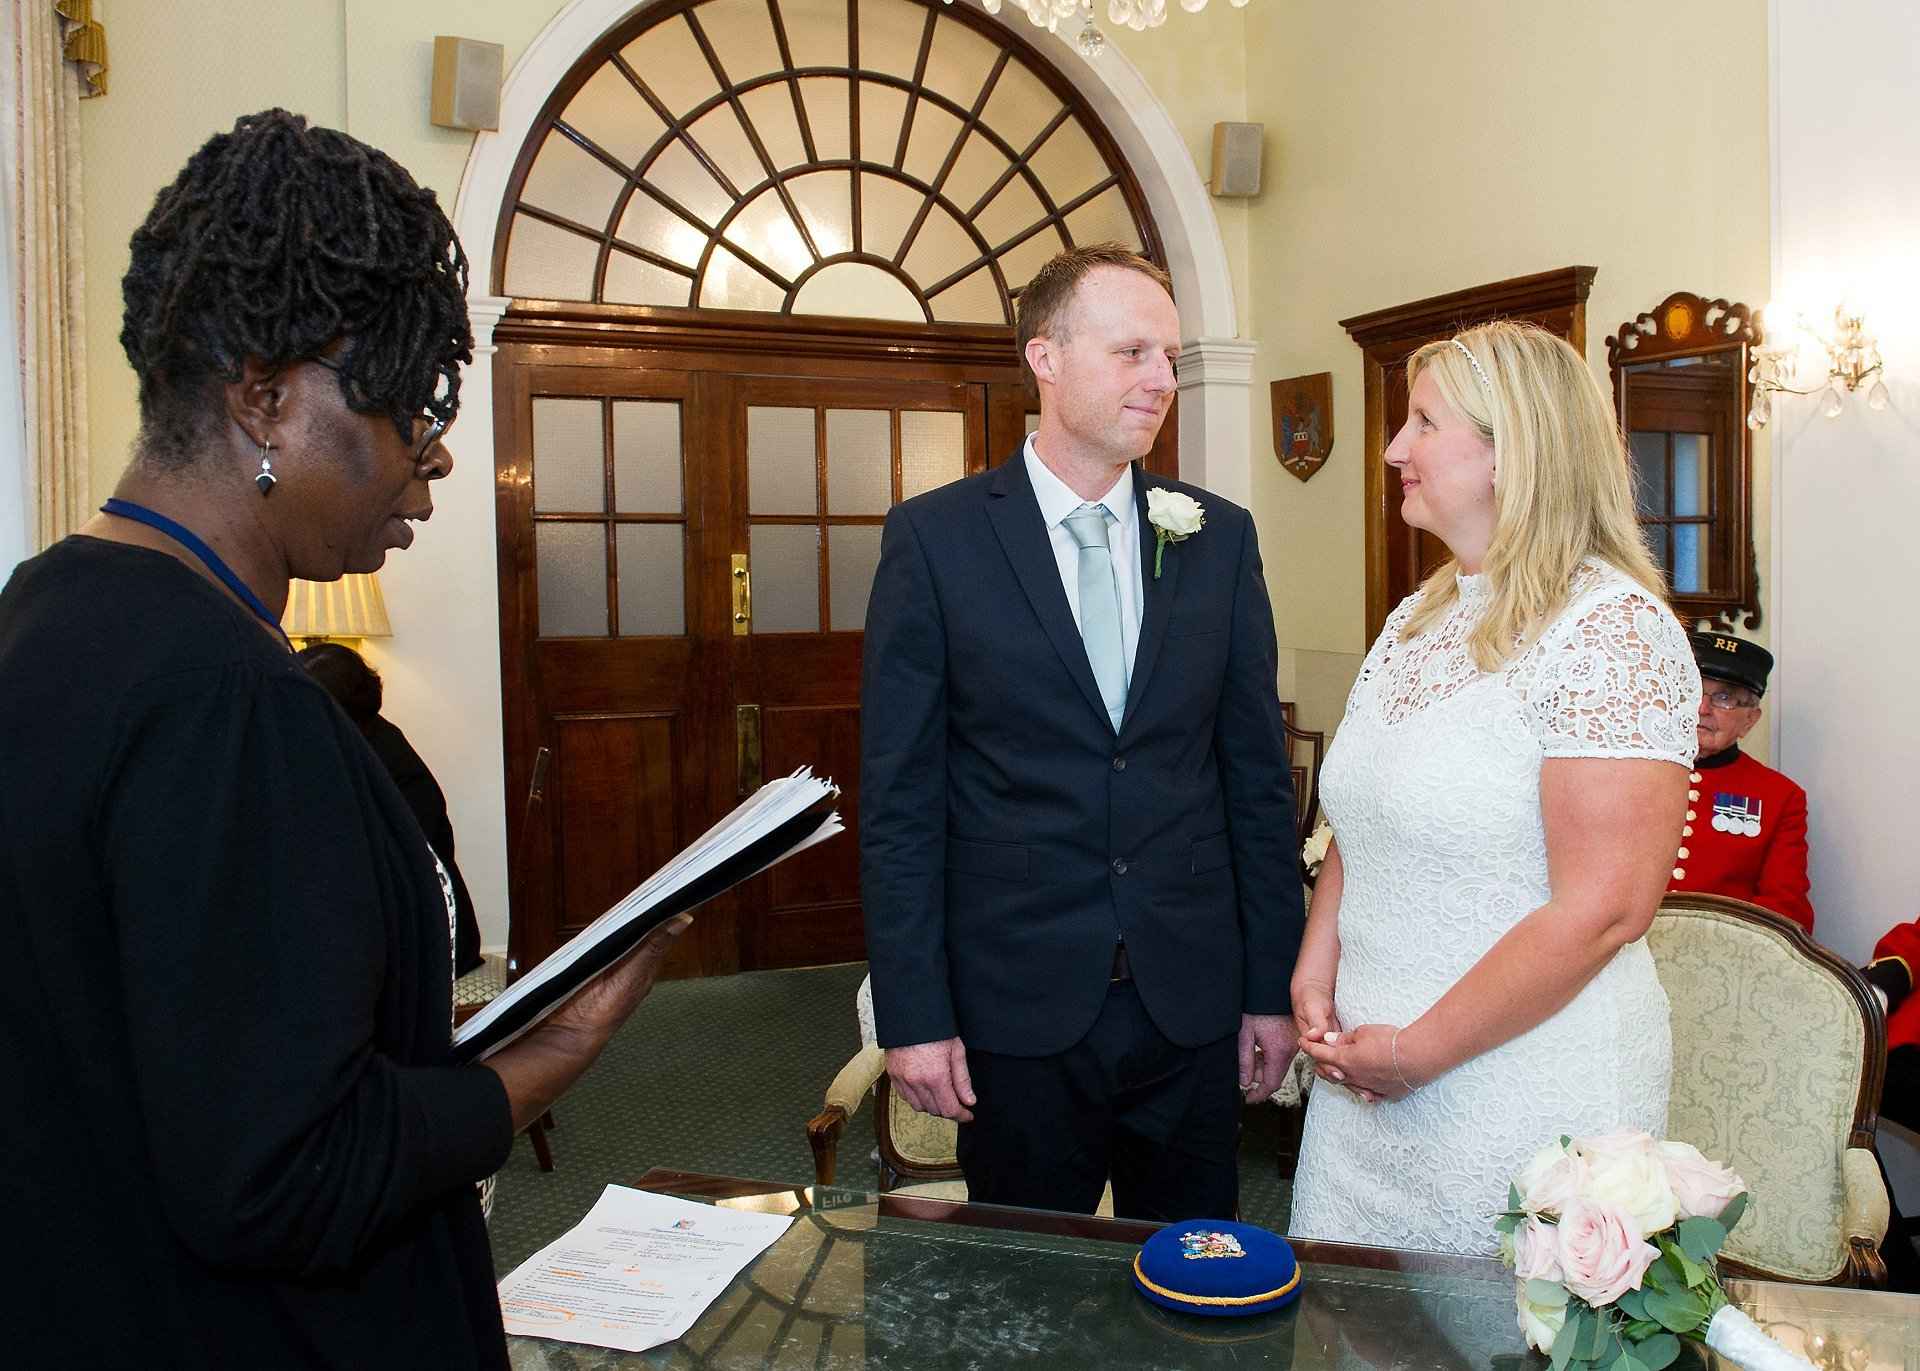 Leah and Andrew smile at the start of their civil wedding ceremony in Chelsea Town Hall's Rossetti Room